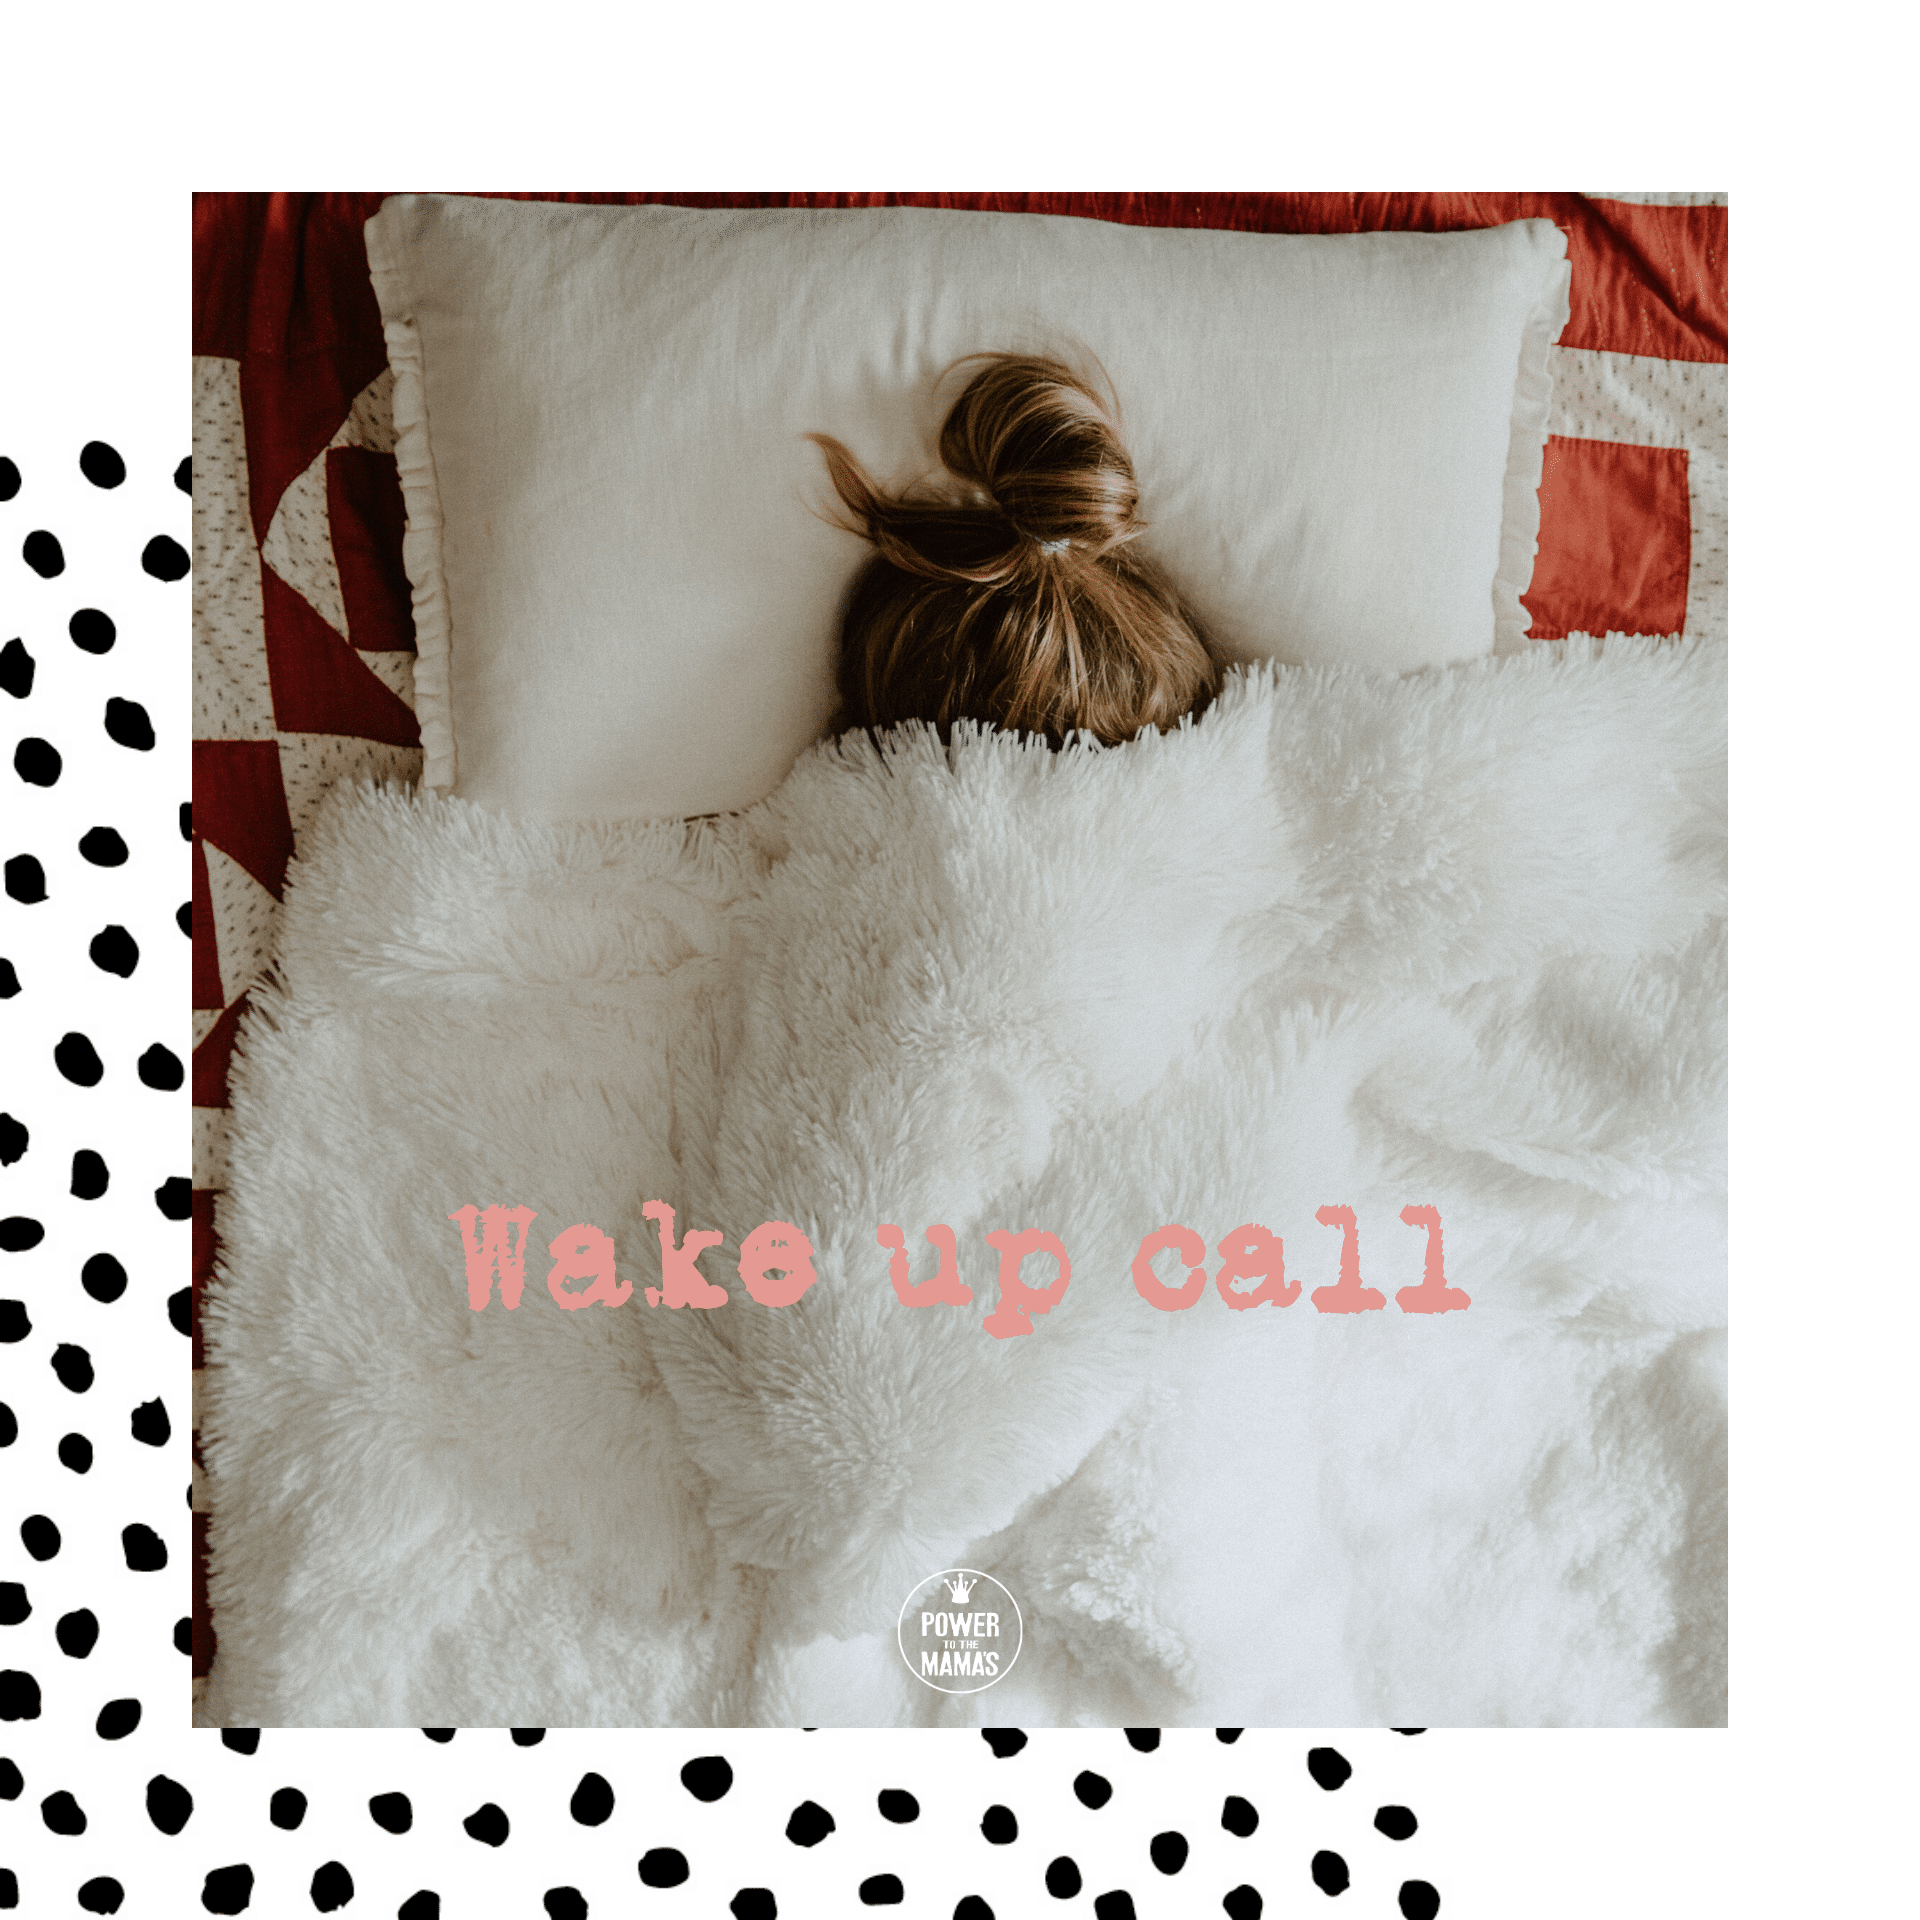 Wake-up call voor een struisvogel